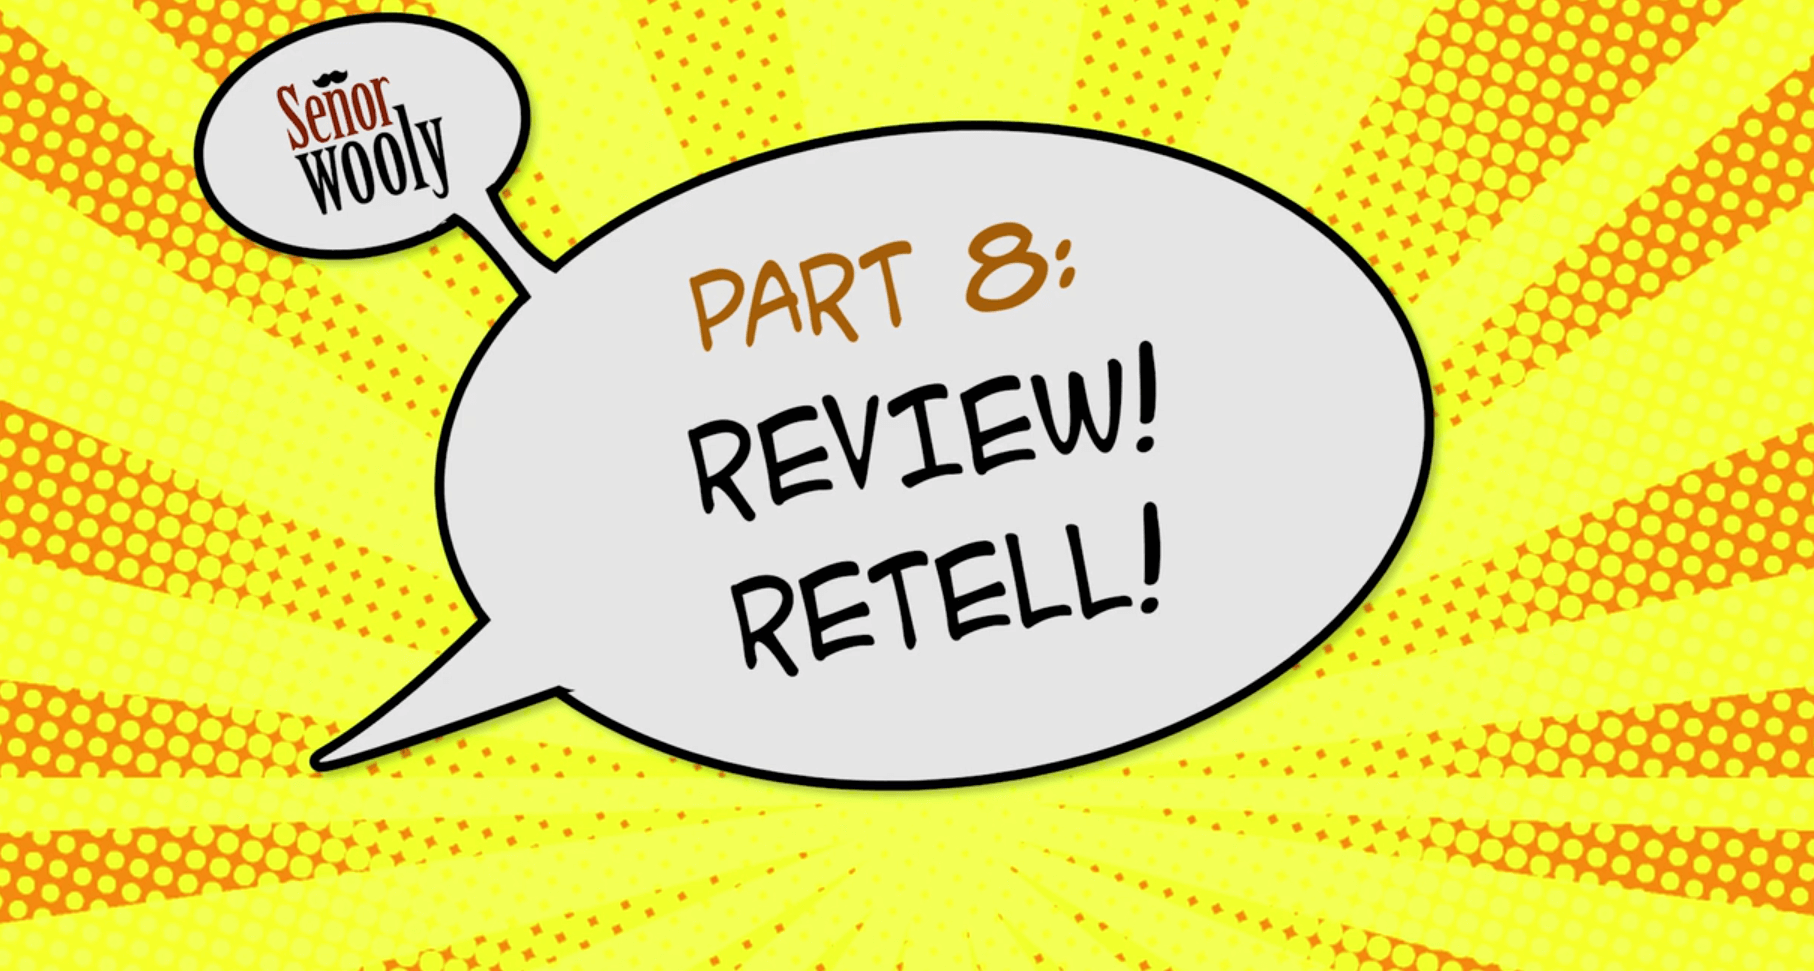 Part 8 - Review! Retell!